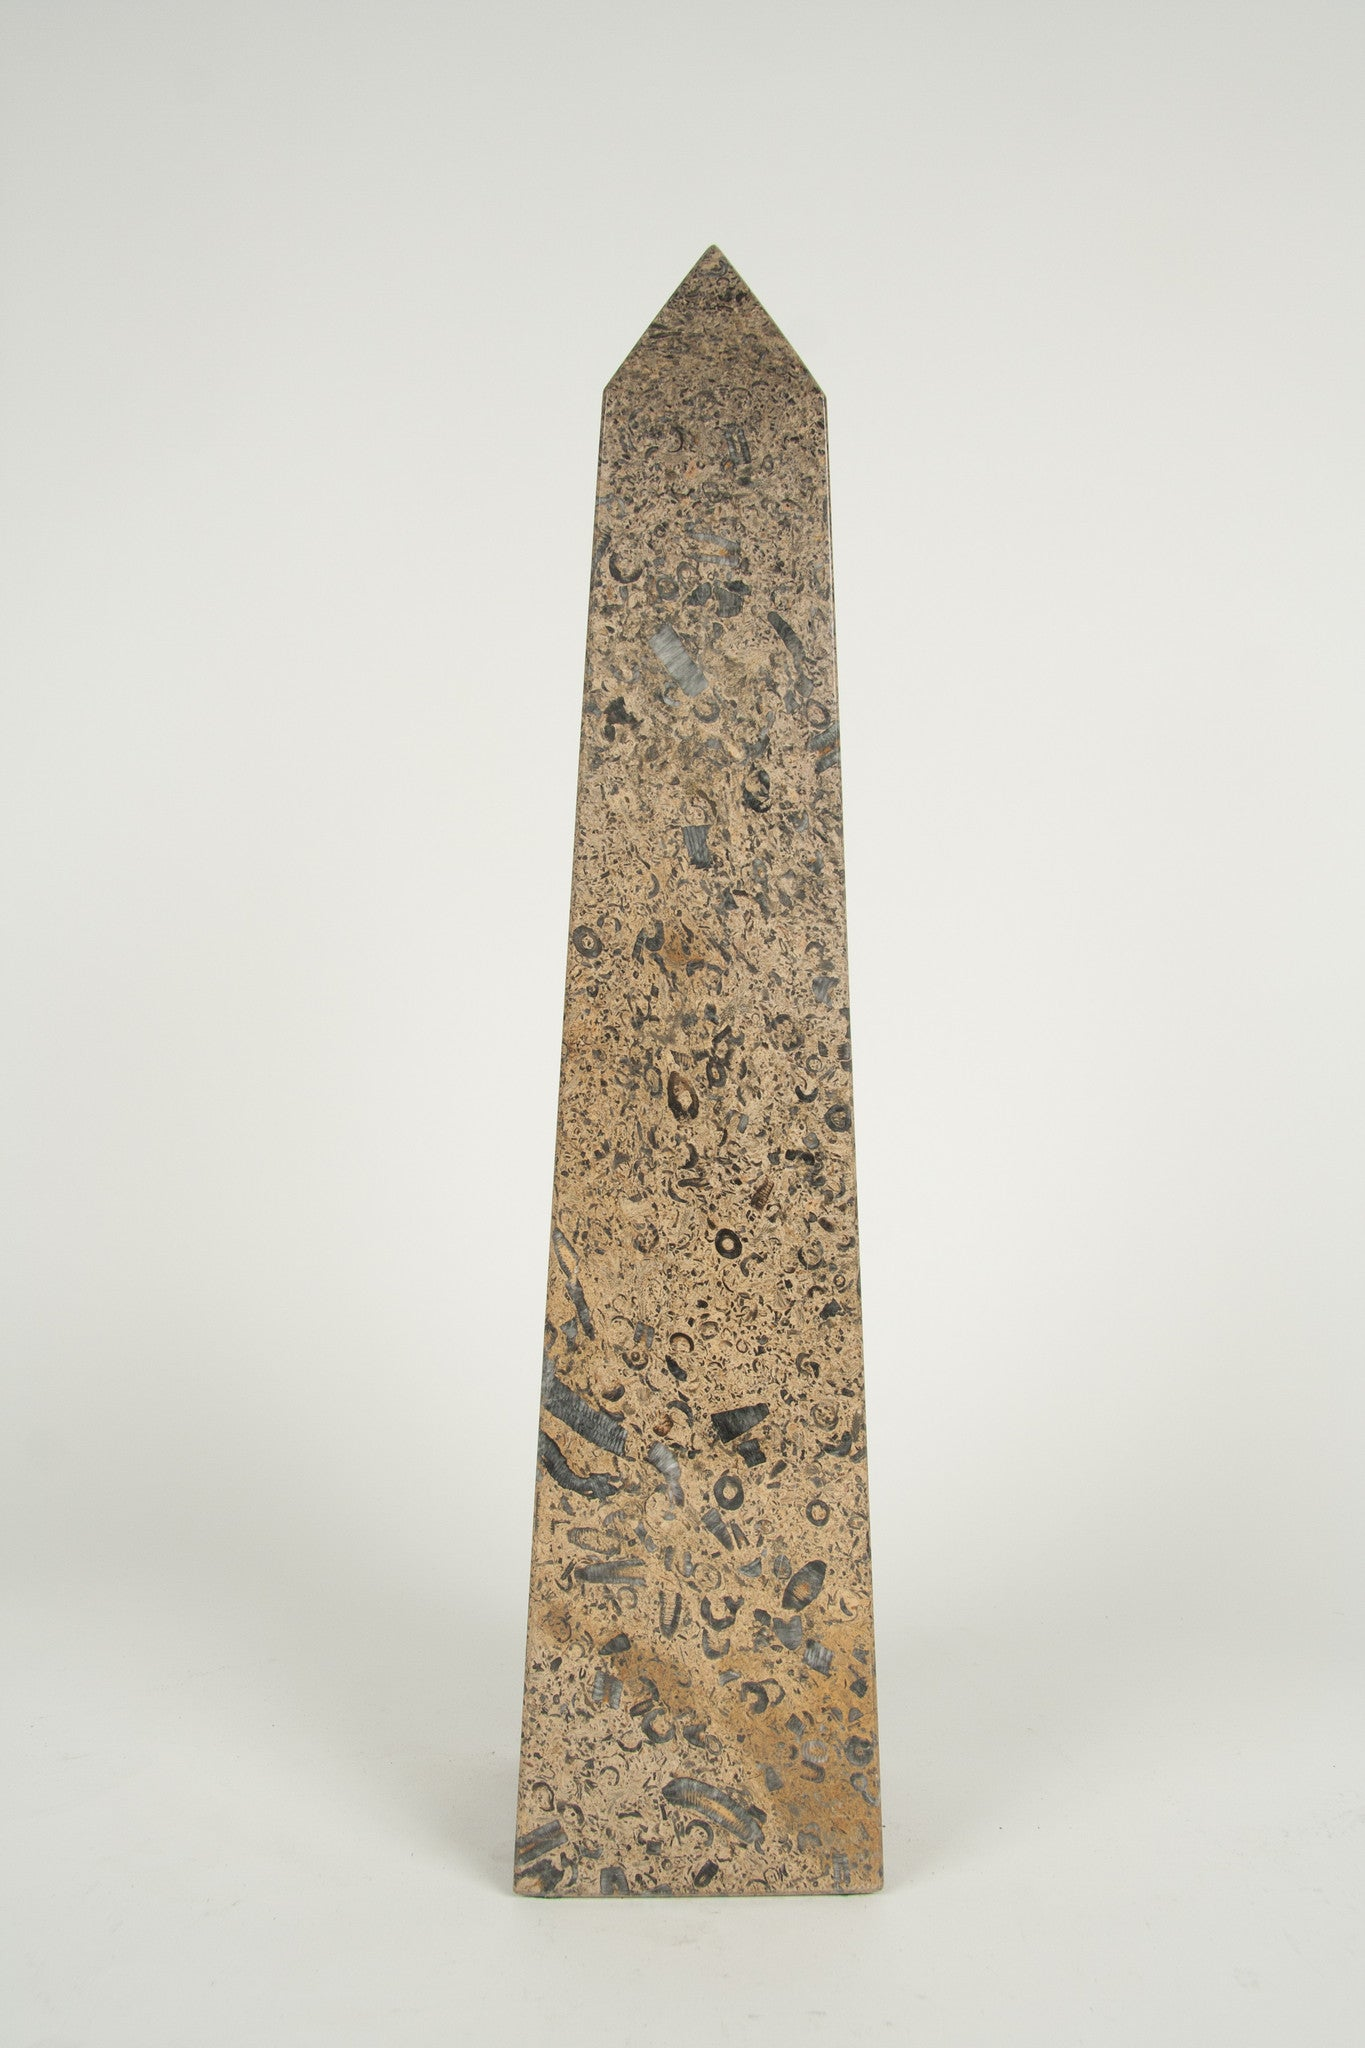 A Granite Obelisk with Fossilized Crustaceans